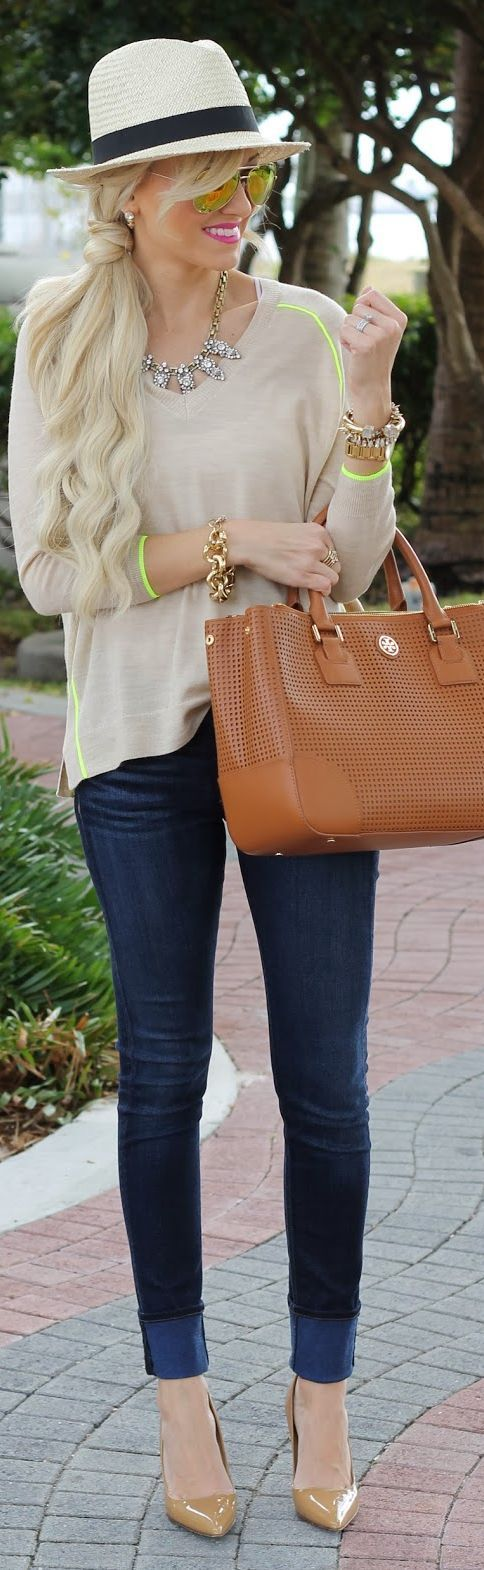 Feeling Like Spring... #Winter Casual Chic Streetstyle #A spoonful Of Style fashion Women - want purse pampering - visit HUMPhooks.com